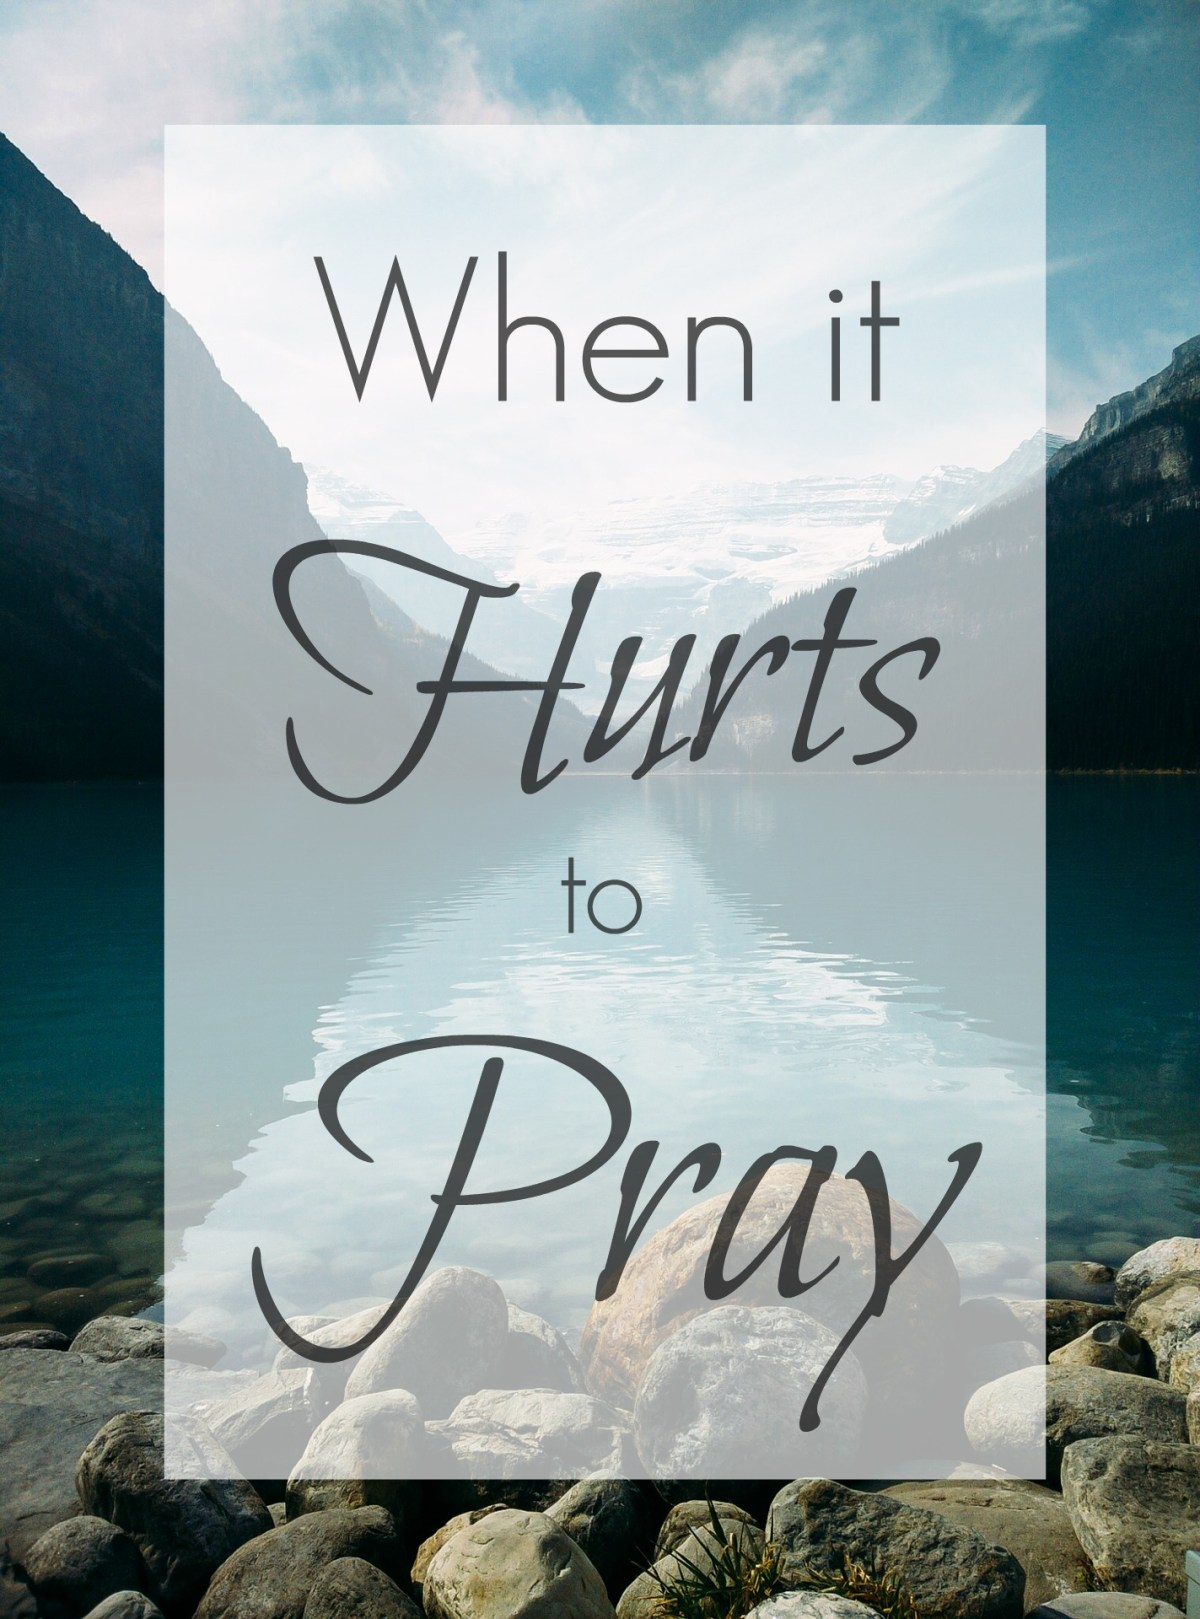 Embracing prayer, even when it hurts.